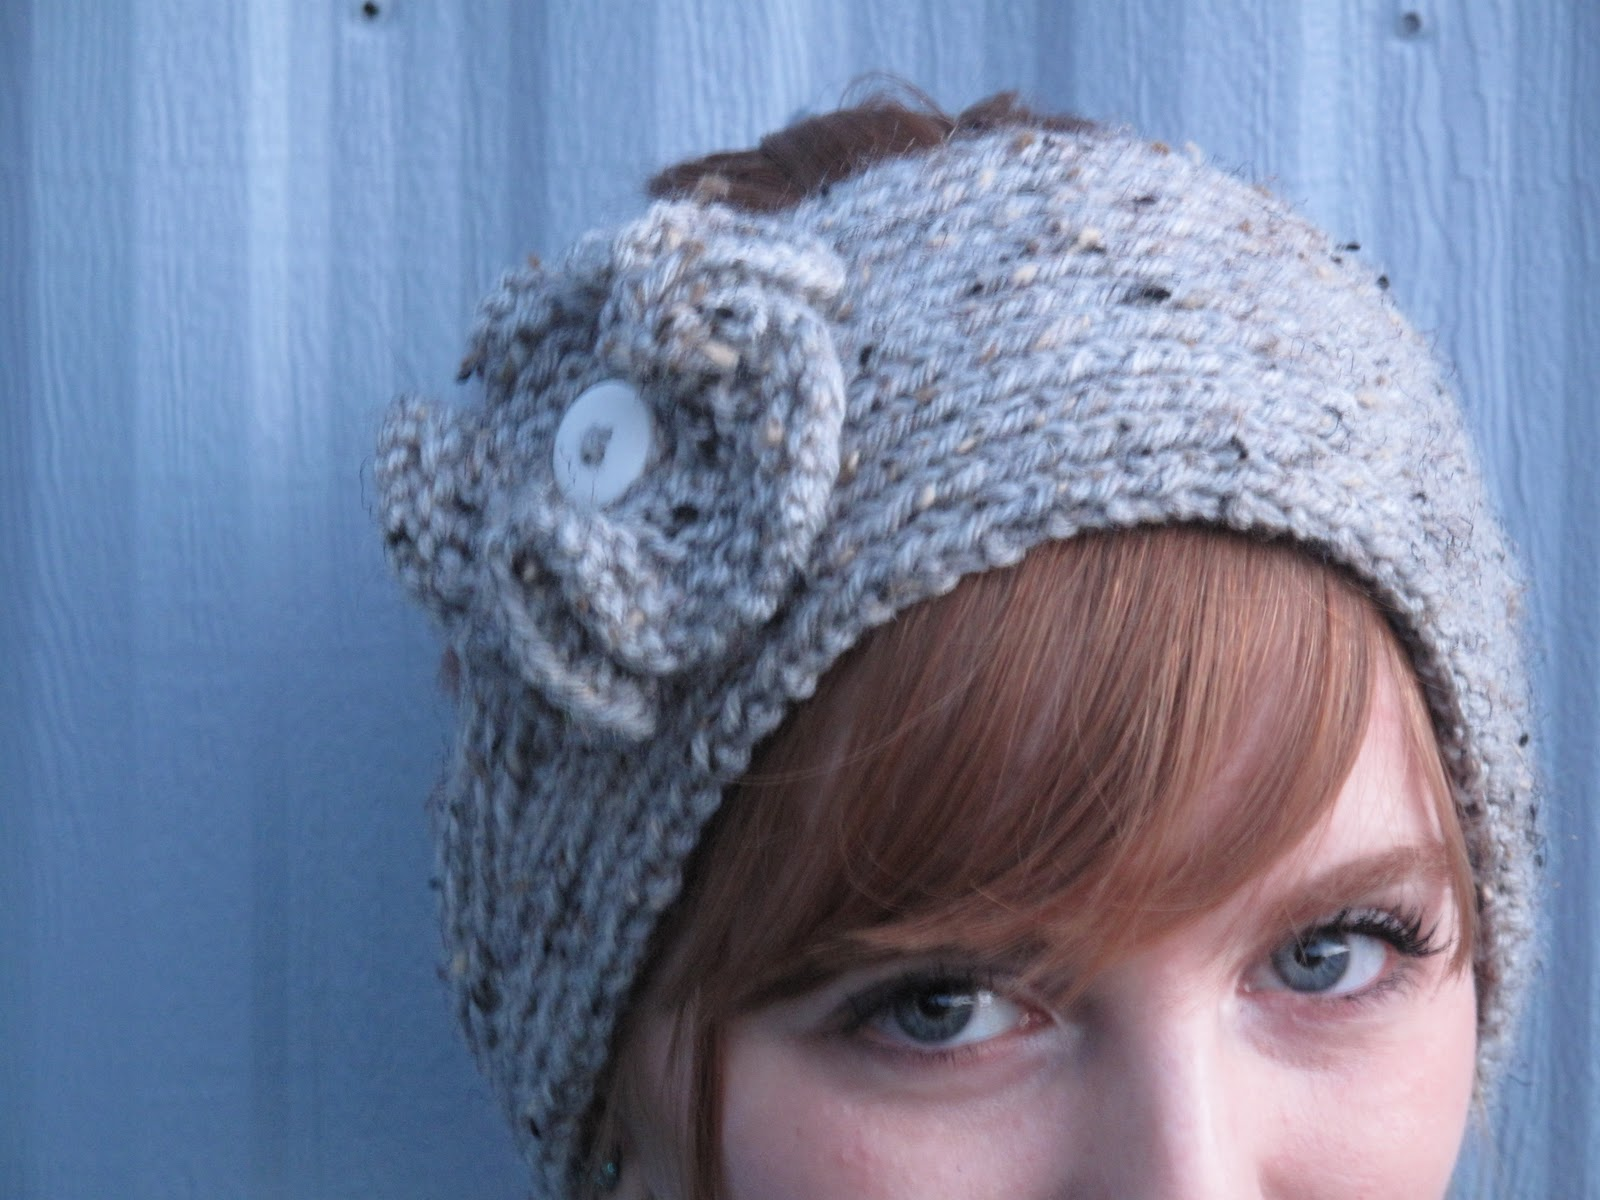 Knitted Headband Patterns With Flower : Knit Cookies Knits: Knit flower tutorial